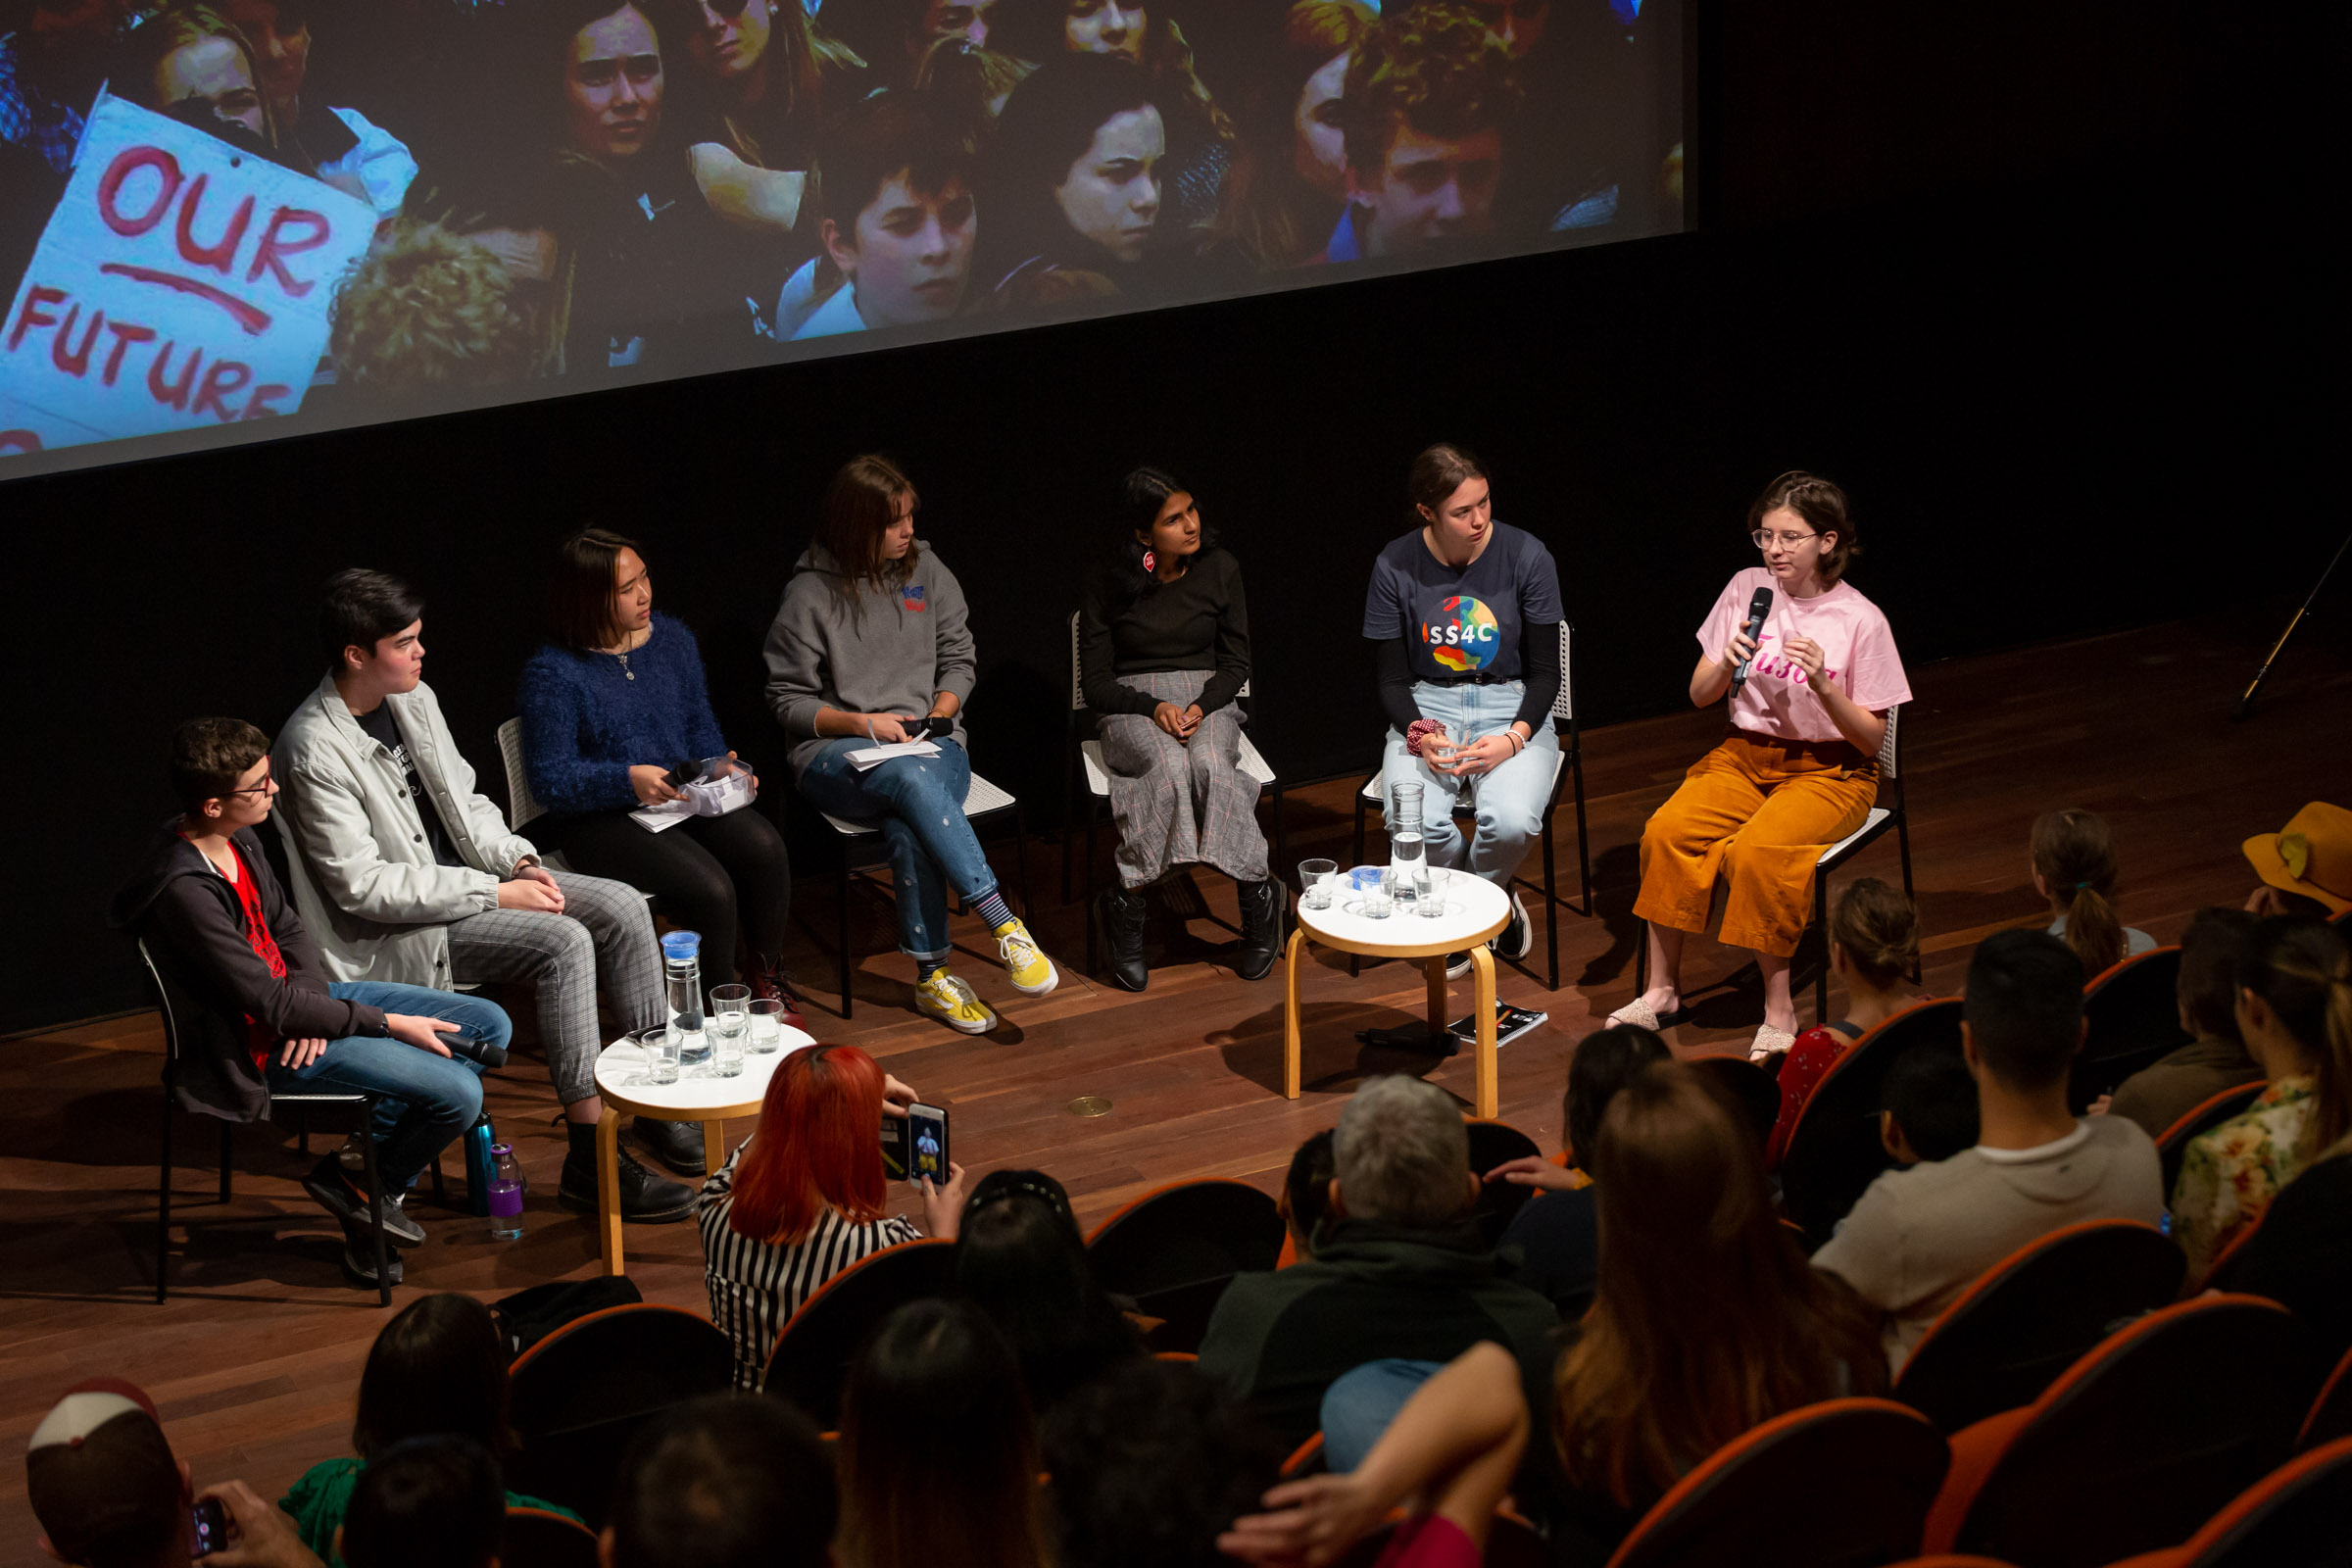 Strikers! Youth leading change change panel, Conversation Starters 2019: Temperature Rising, MCA Australia, 2 June 2019. Photo: Jodie Barker, Image courtesy: MCA Australia